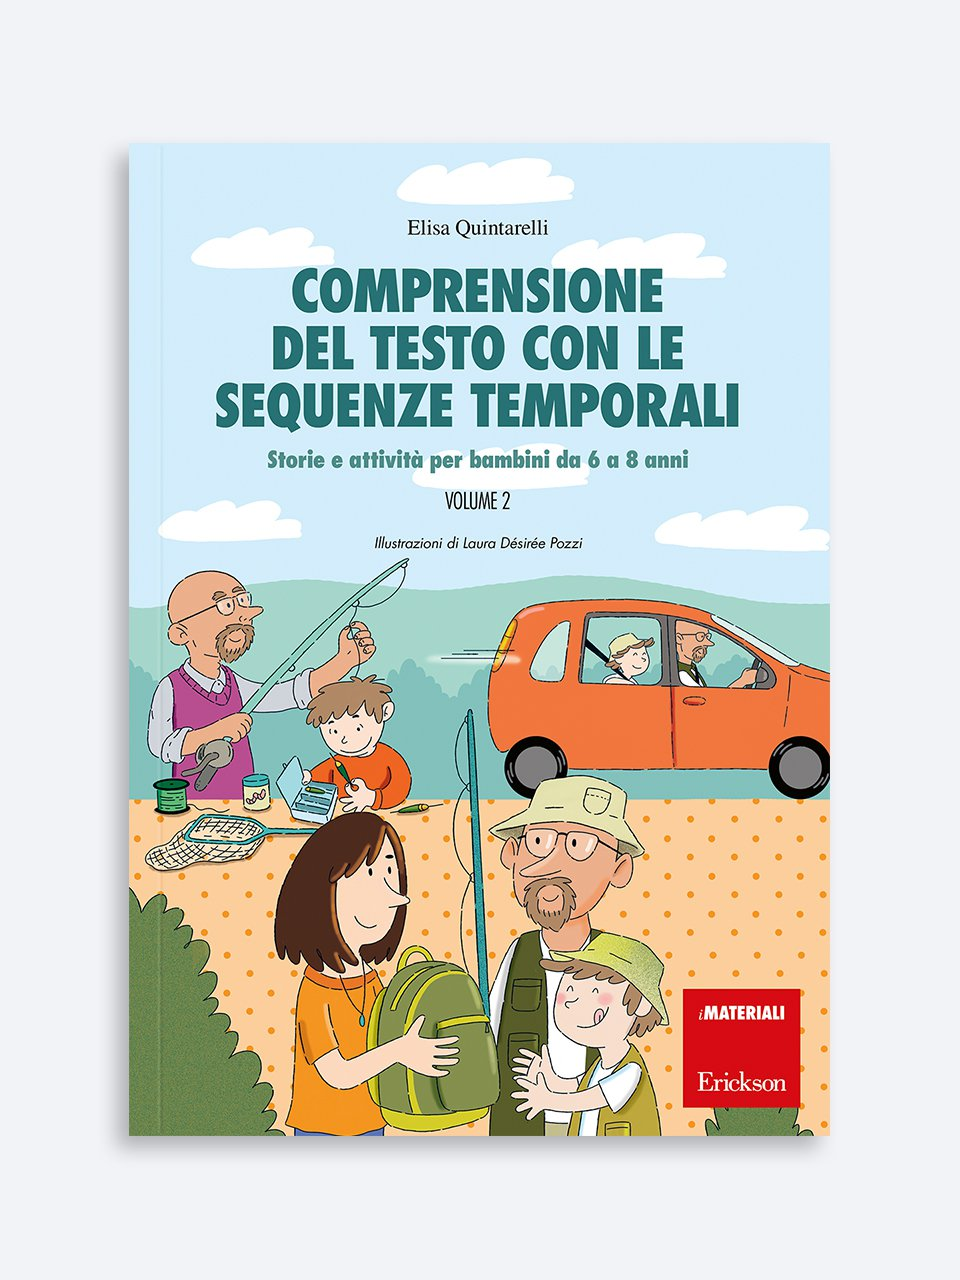 Comprensione del testo con le sequenze temporali - Volume 2 - Metacognizione - Erickson